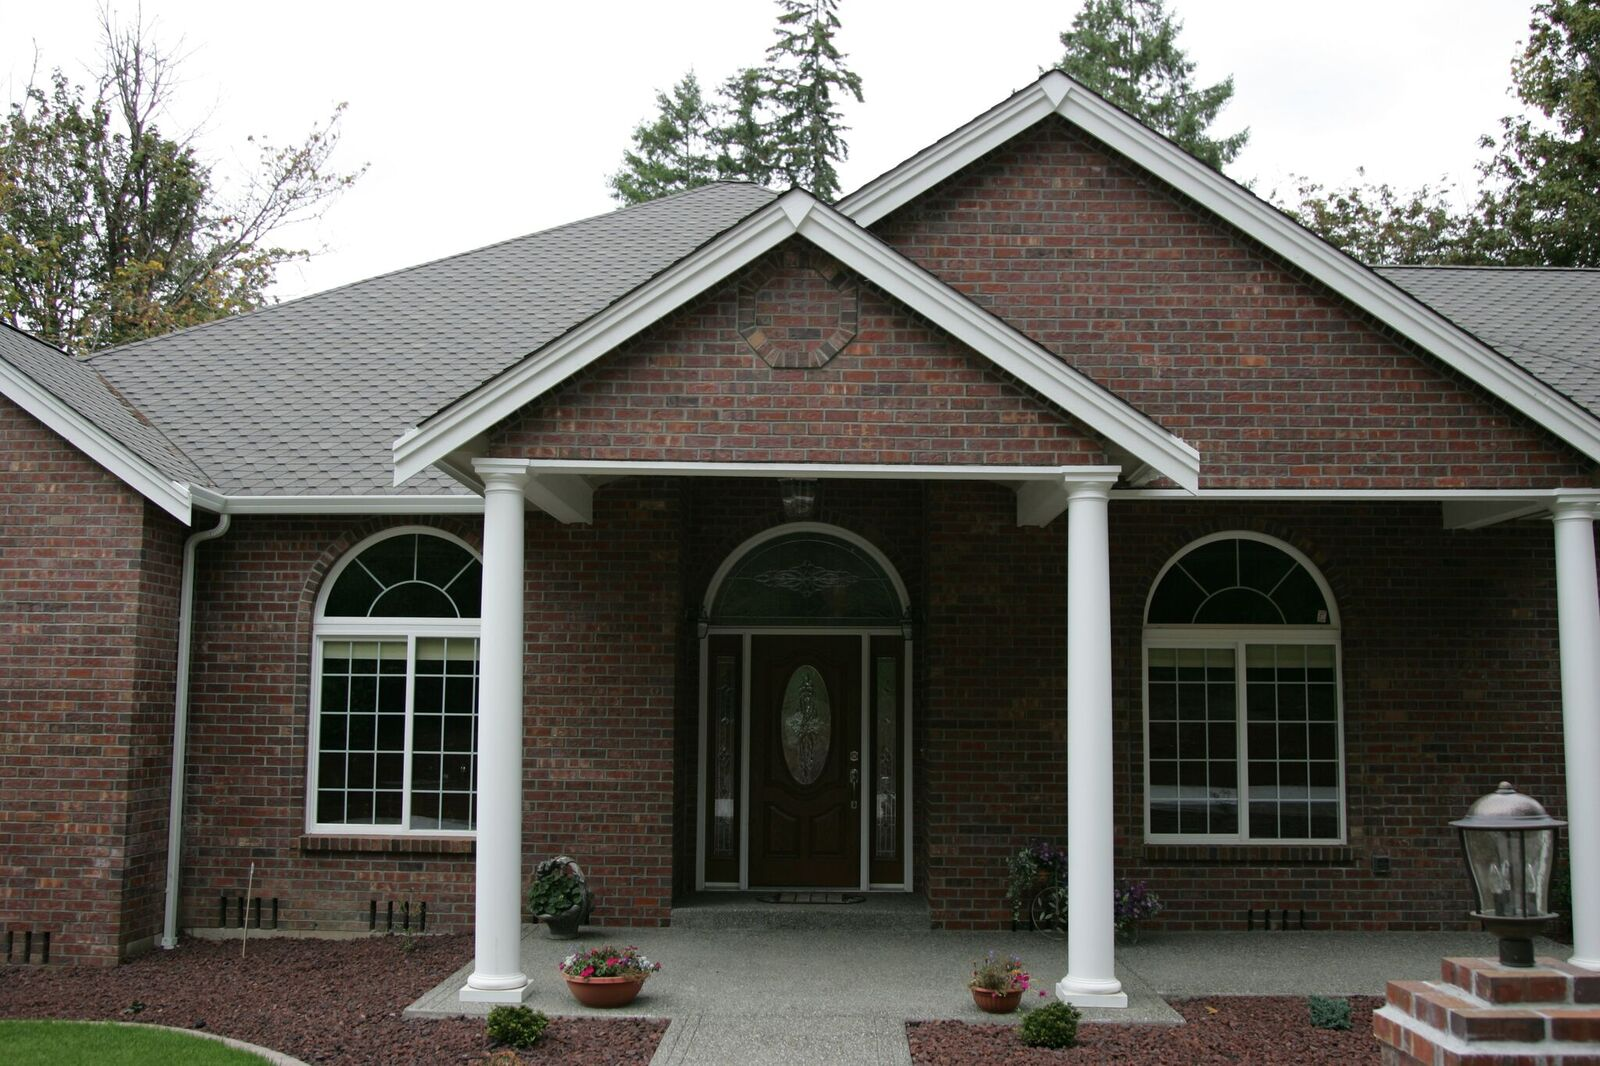 Brick Home Exterior Entry